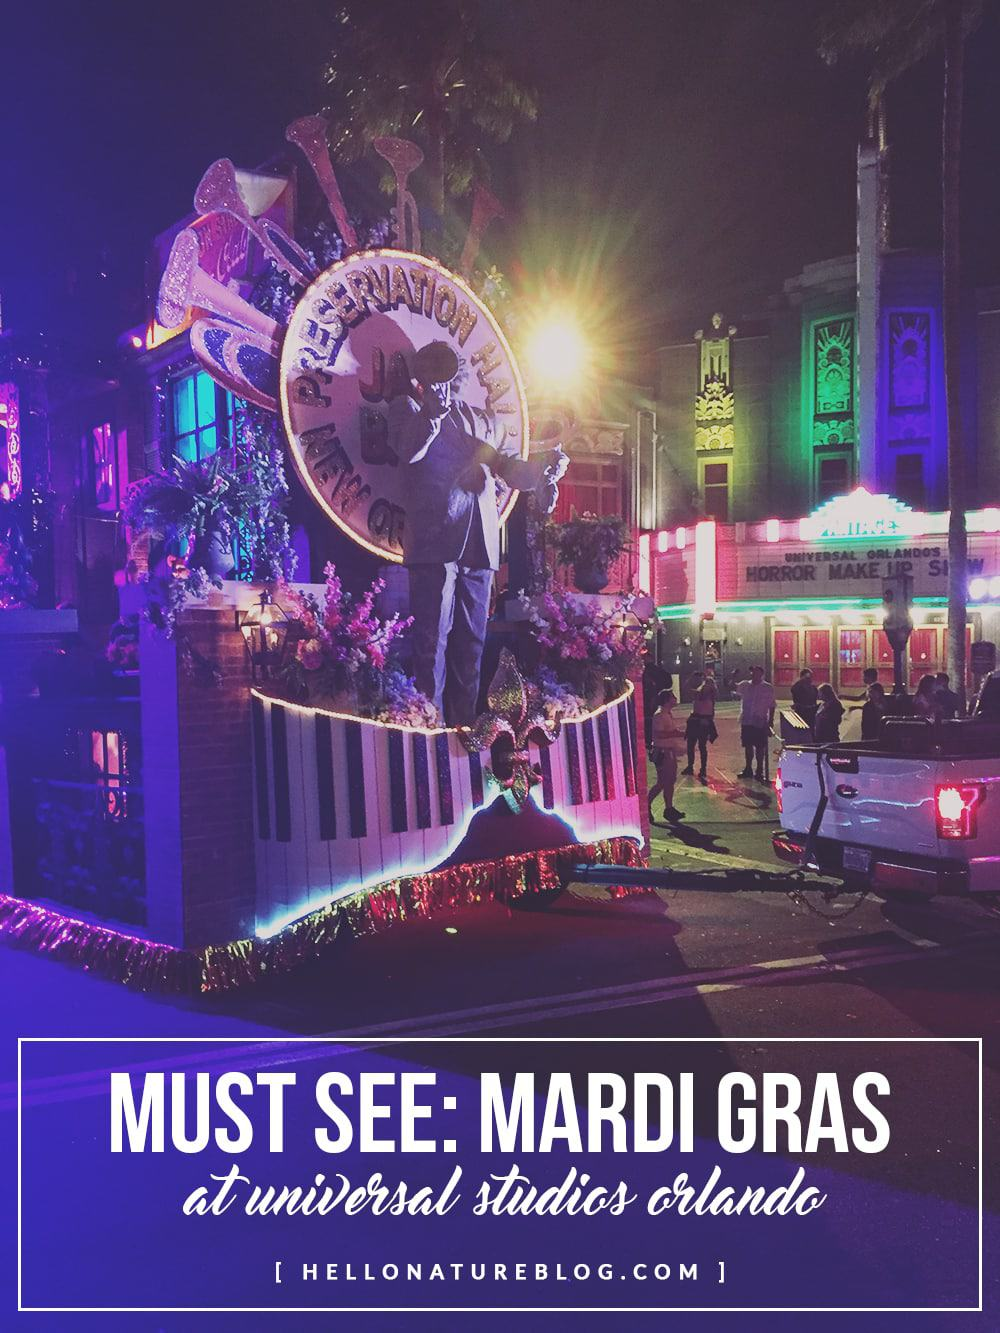 Headed to Florida in February or March? Be sure to check out the Mardi Gras celebration over at Universal Studios Orlando!